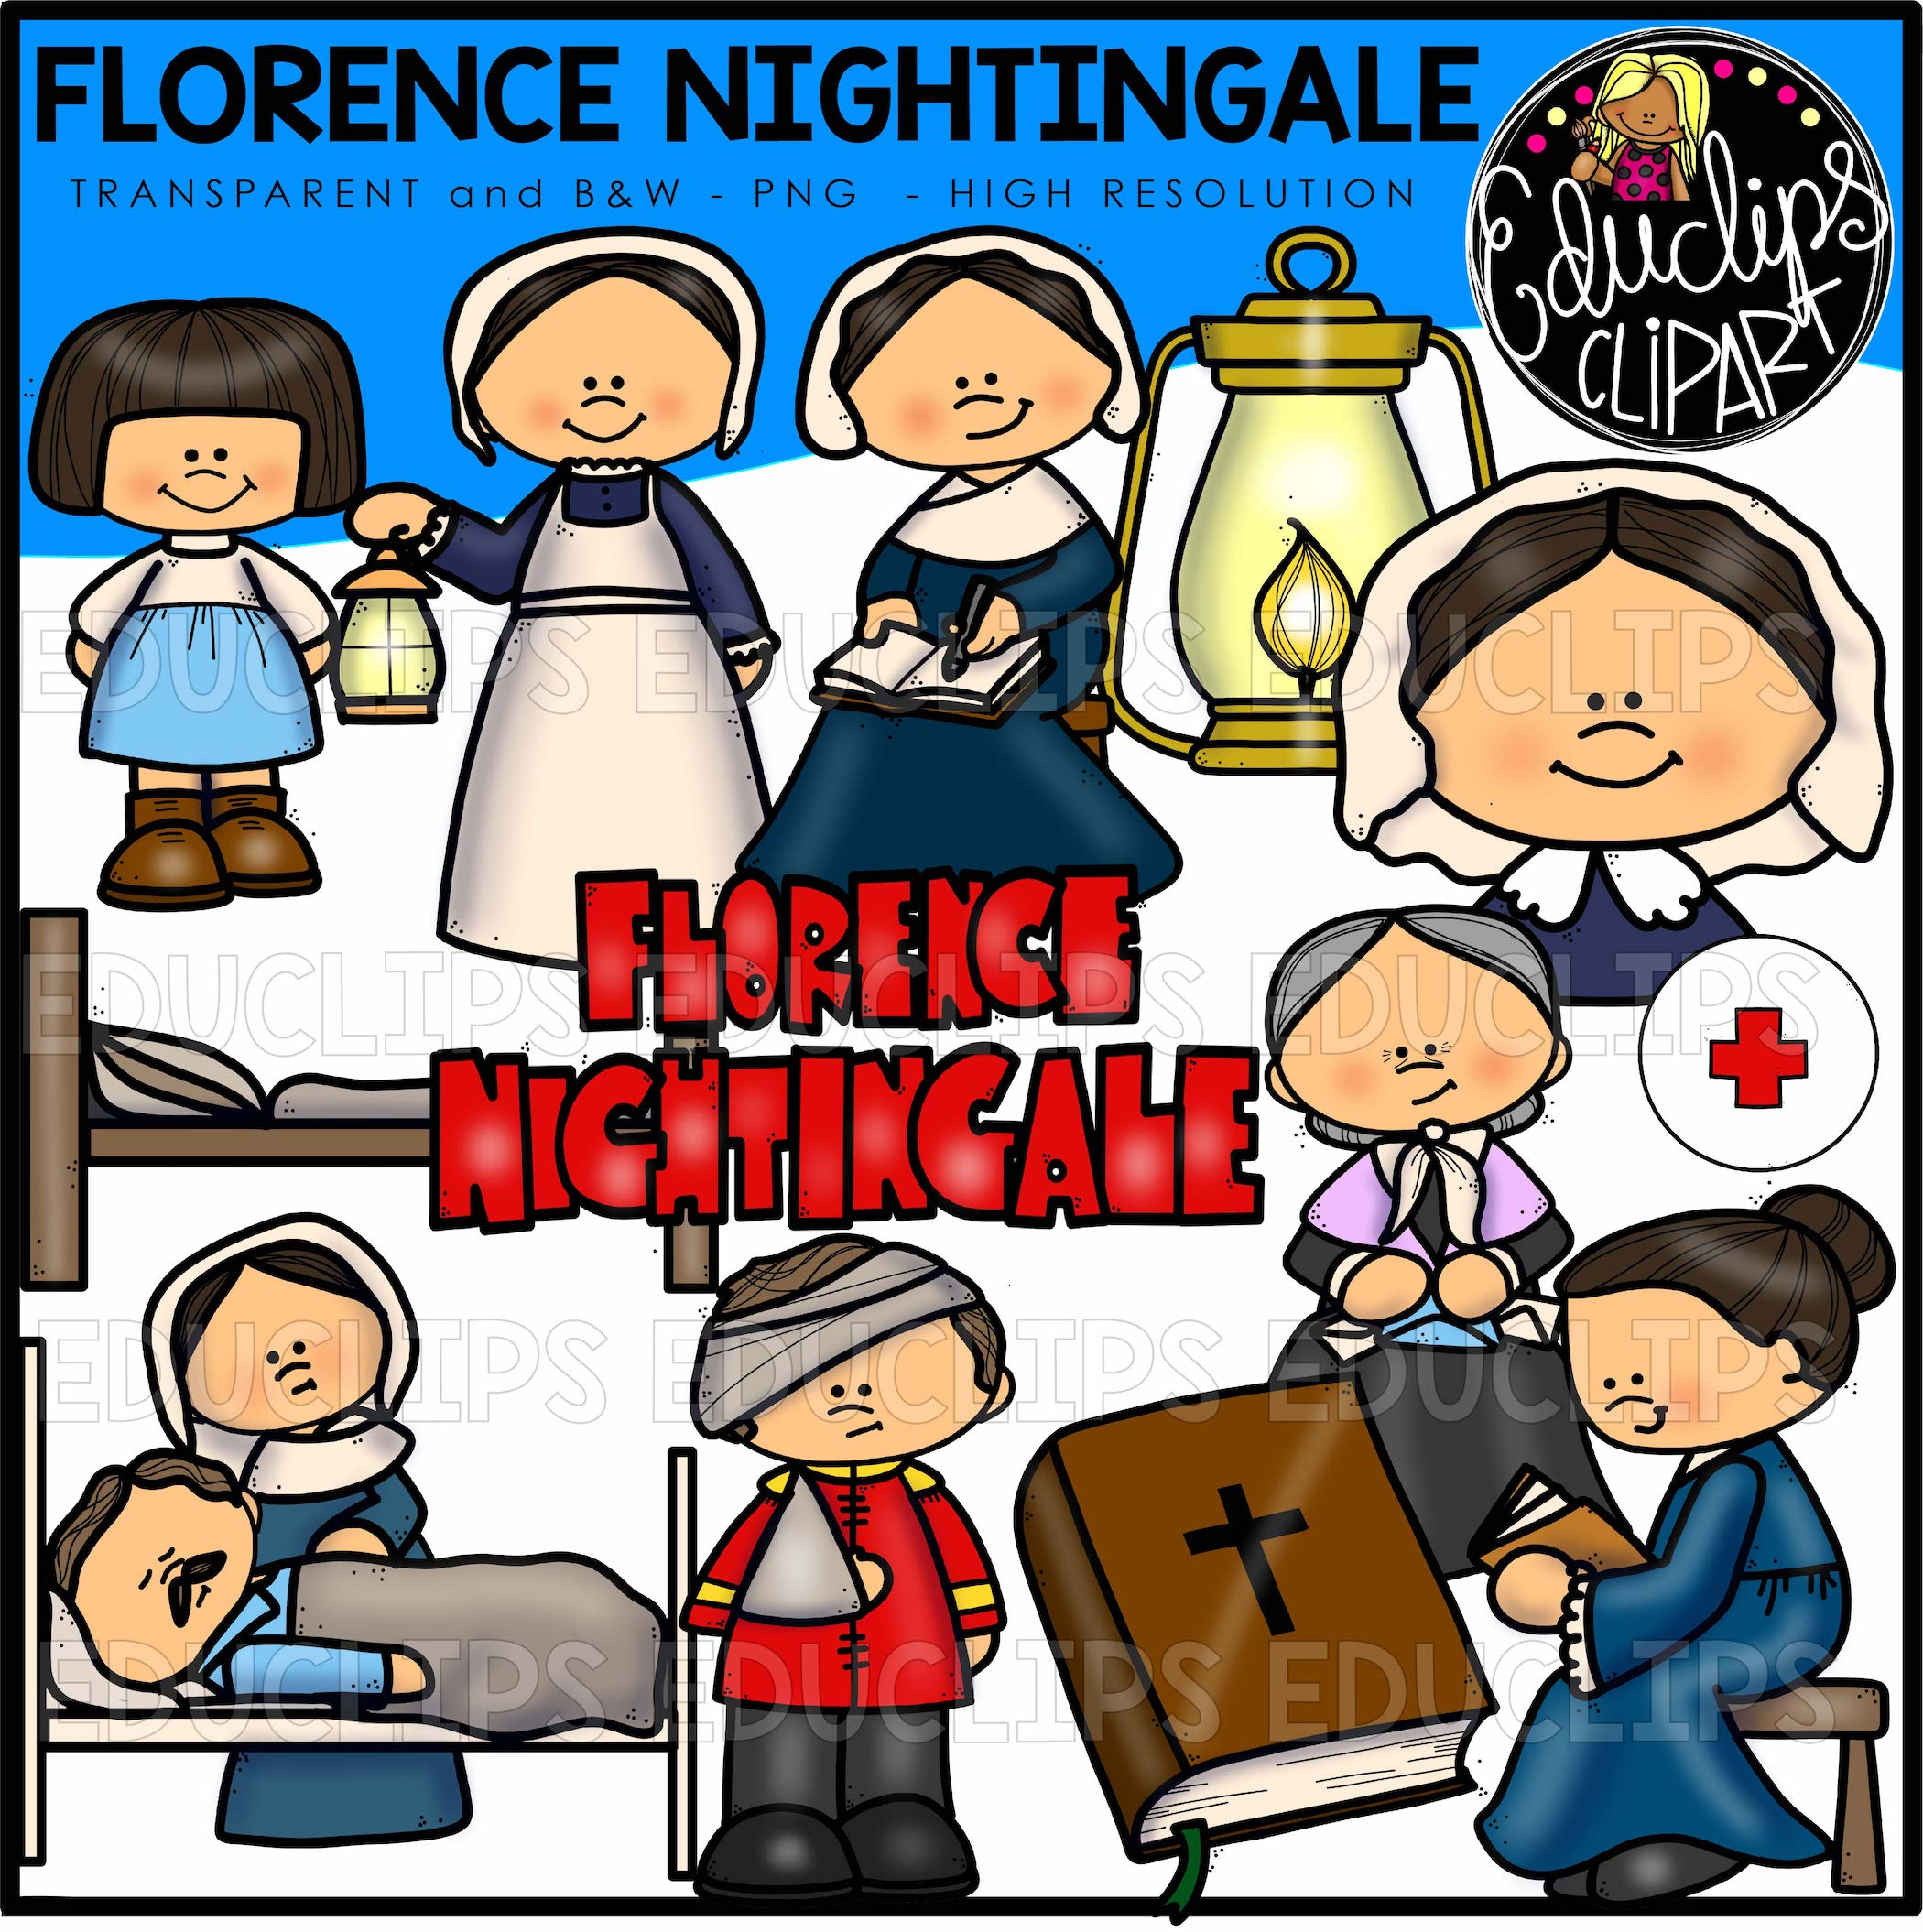 Florence nightingale clip art bundle color and b w for Florence nightingale lamp template